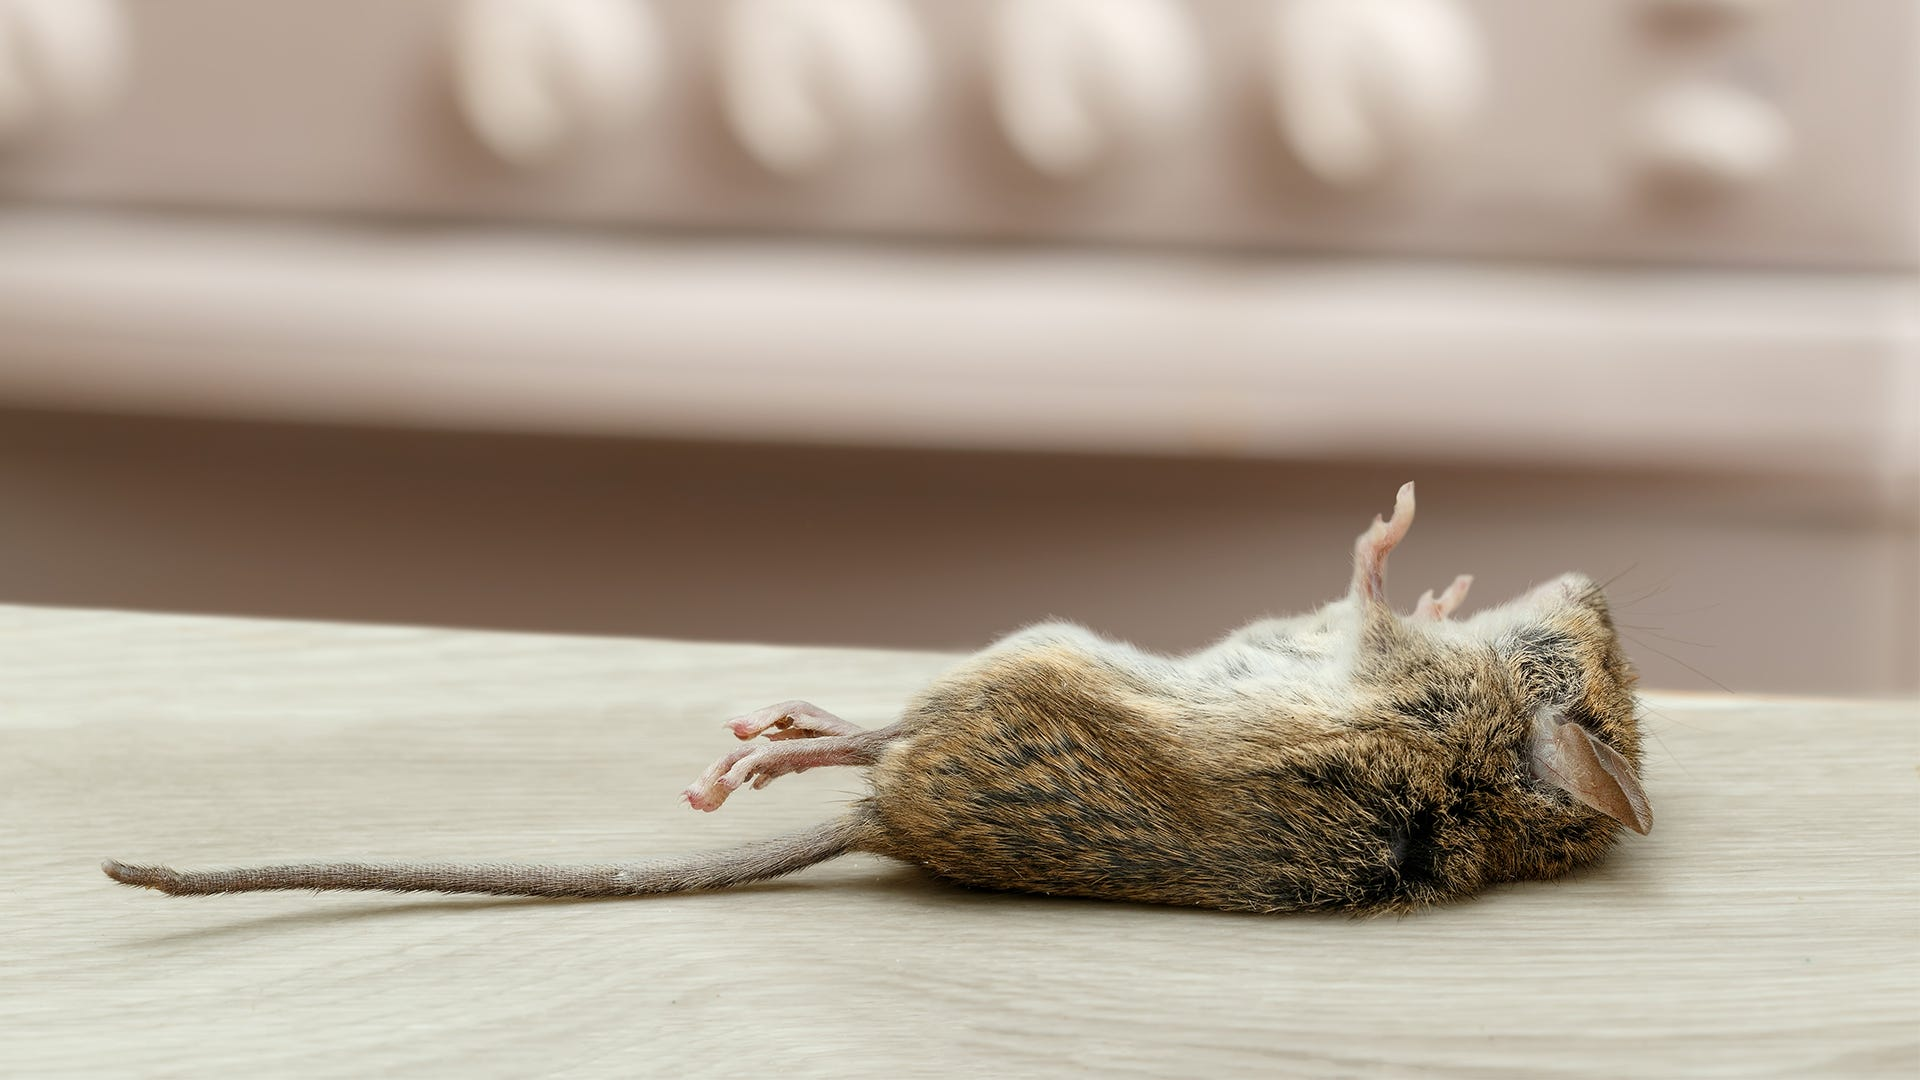 How Do I Dispose of a Dead Mouse?